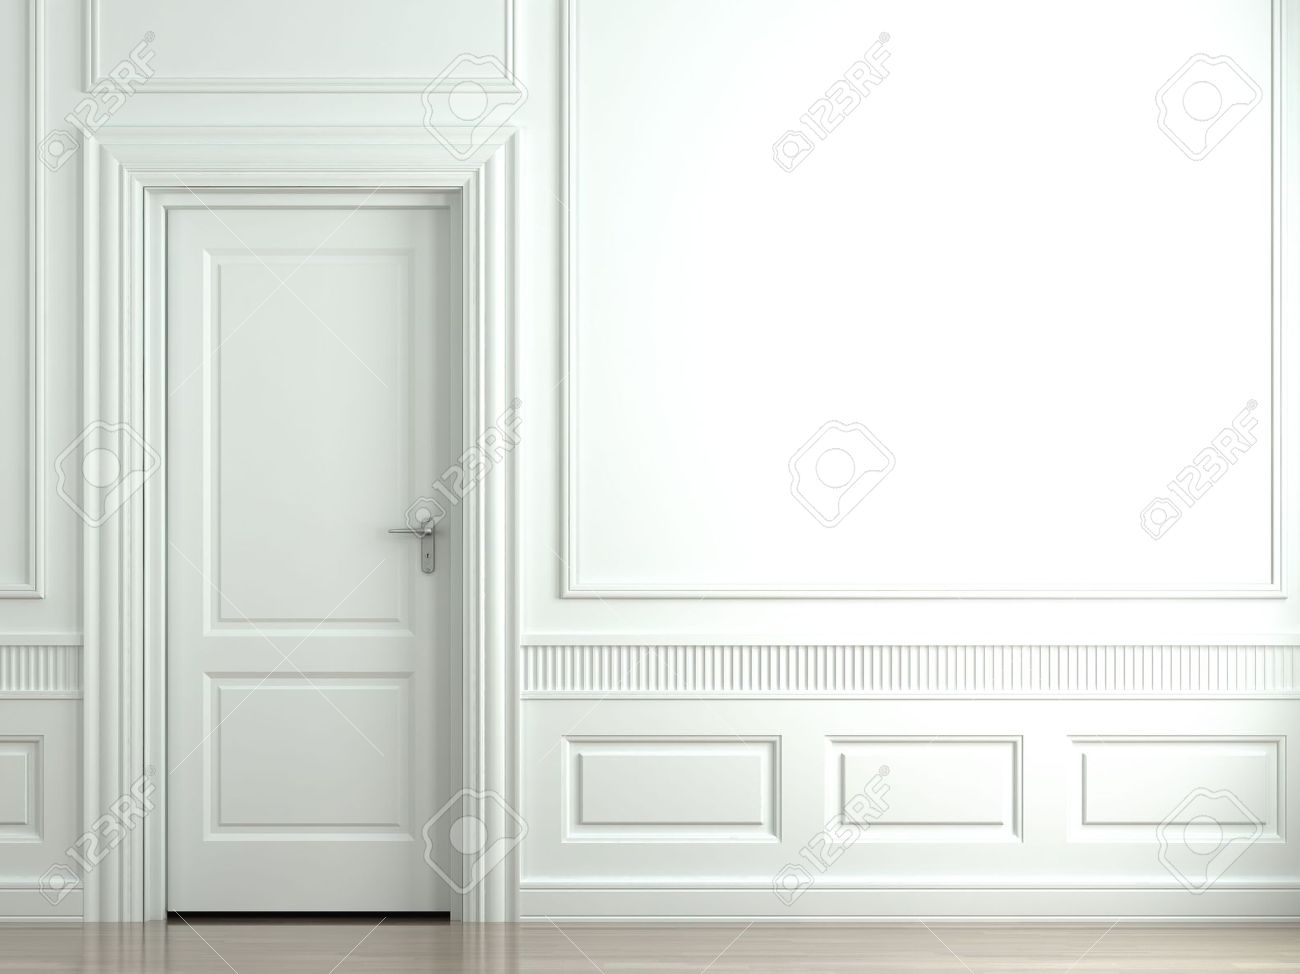 3d scene of a white classic wall with door and moldings Stock Photo - 4574376  sc 1 st  123RF.com & 3d Scene Of A White Classic Wall With Door And Moldings Stock Photo ...